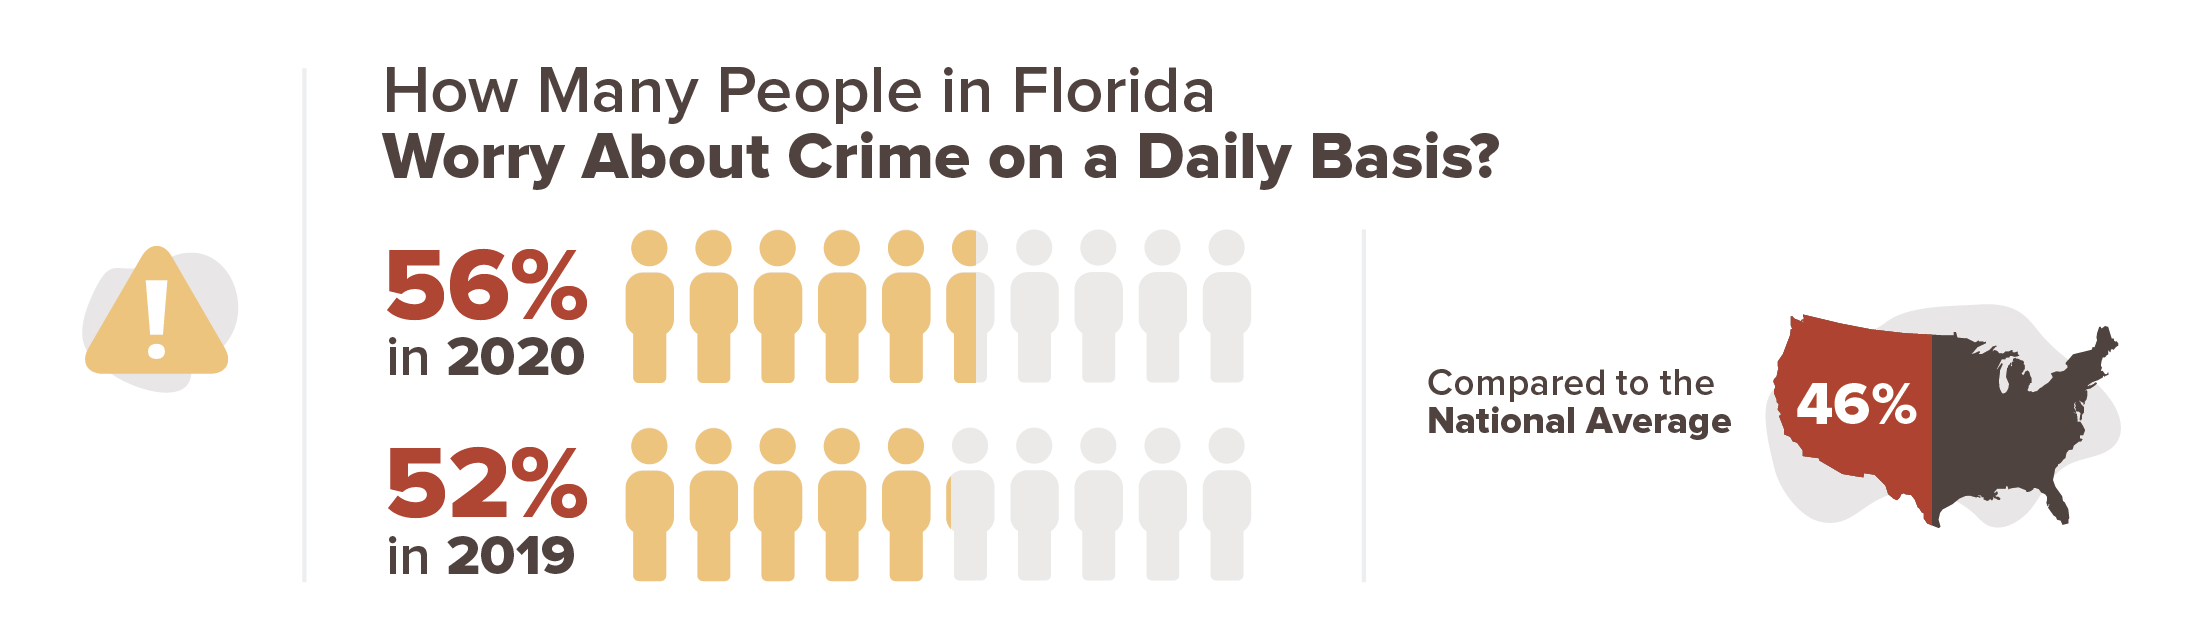 Florida crime stats infographic